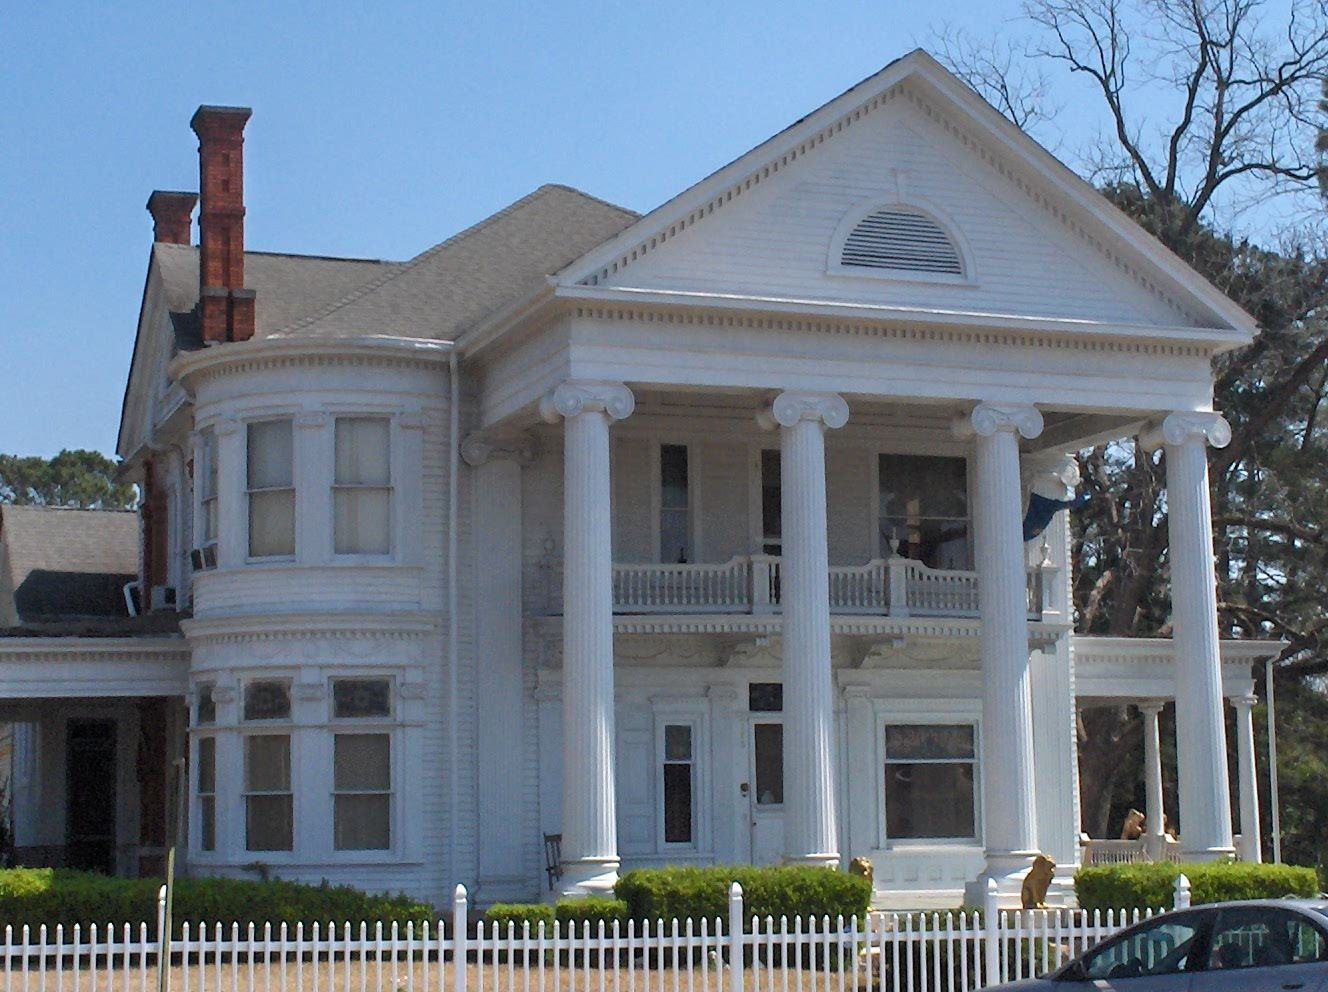 greek revival style architecture house with pillars